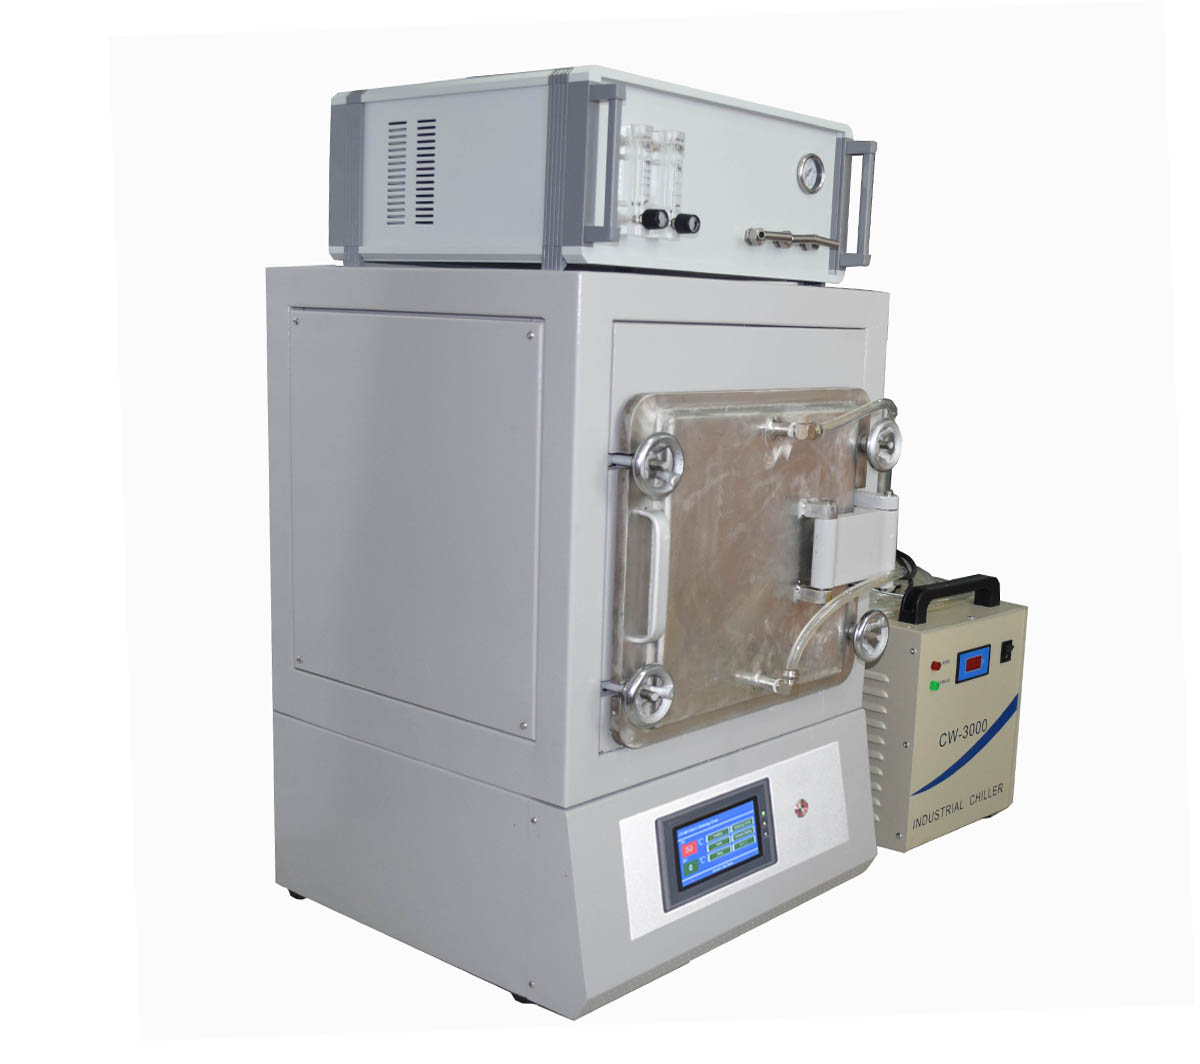 Atmosphere controlled muffle furnace with FFC gas mixer and water chiller-CY-A1600-8IC-2FW